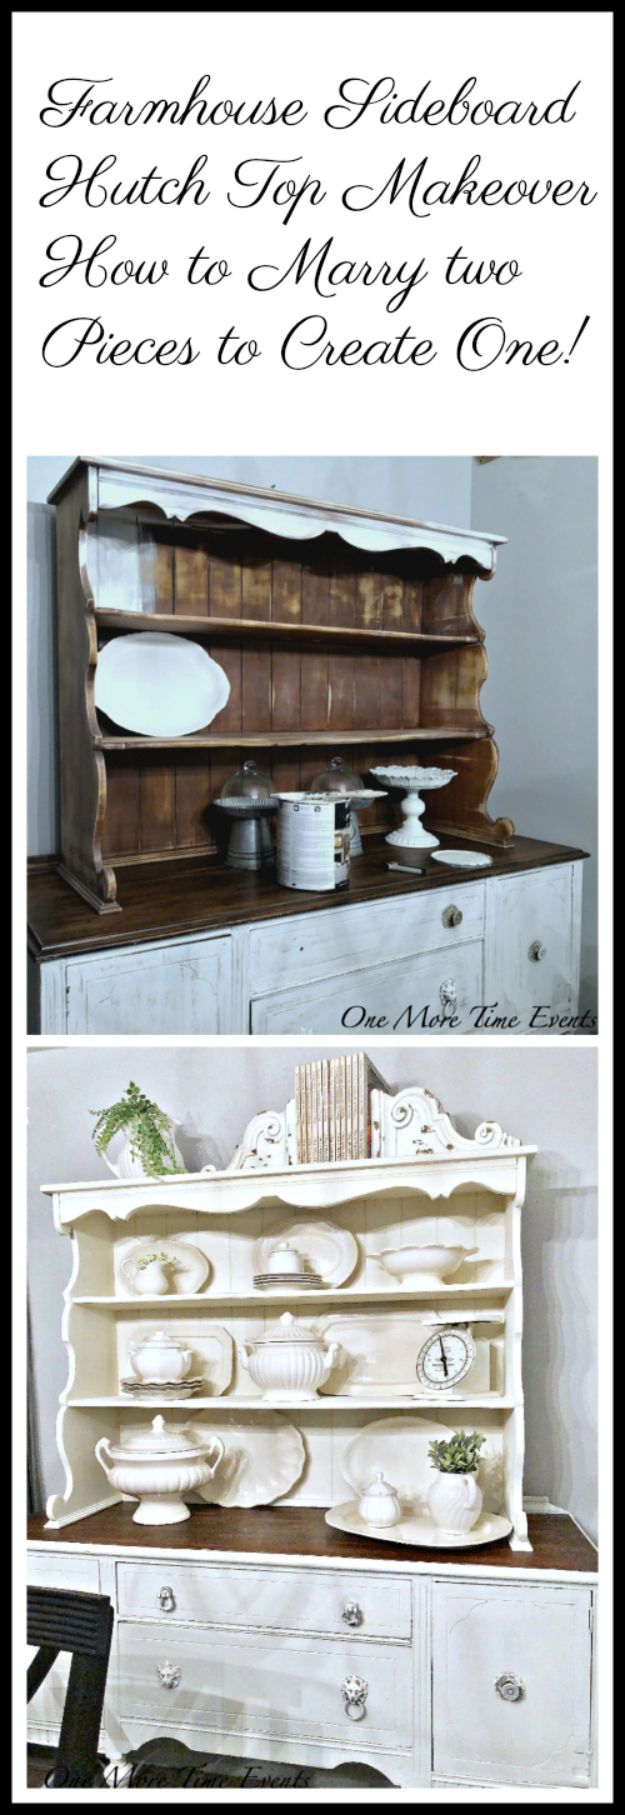 DIY Sideboards - Farmhouse Sideboard Hutch Top Makeover - Easy Furniture Ideas to Make On A Budget - DYI Side Board Tutorial for Makeover, Building Wooden Home Decor